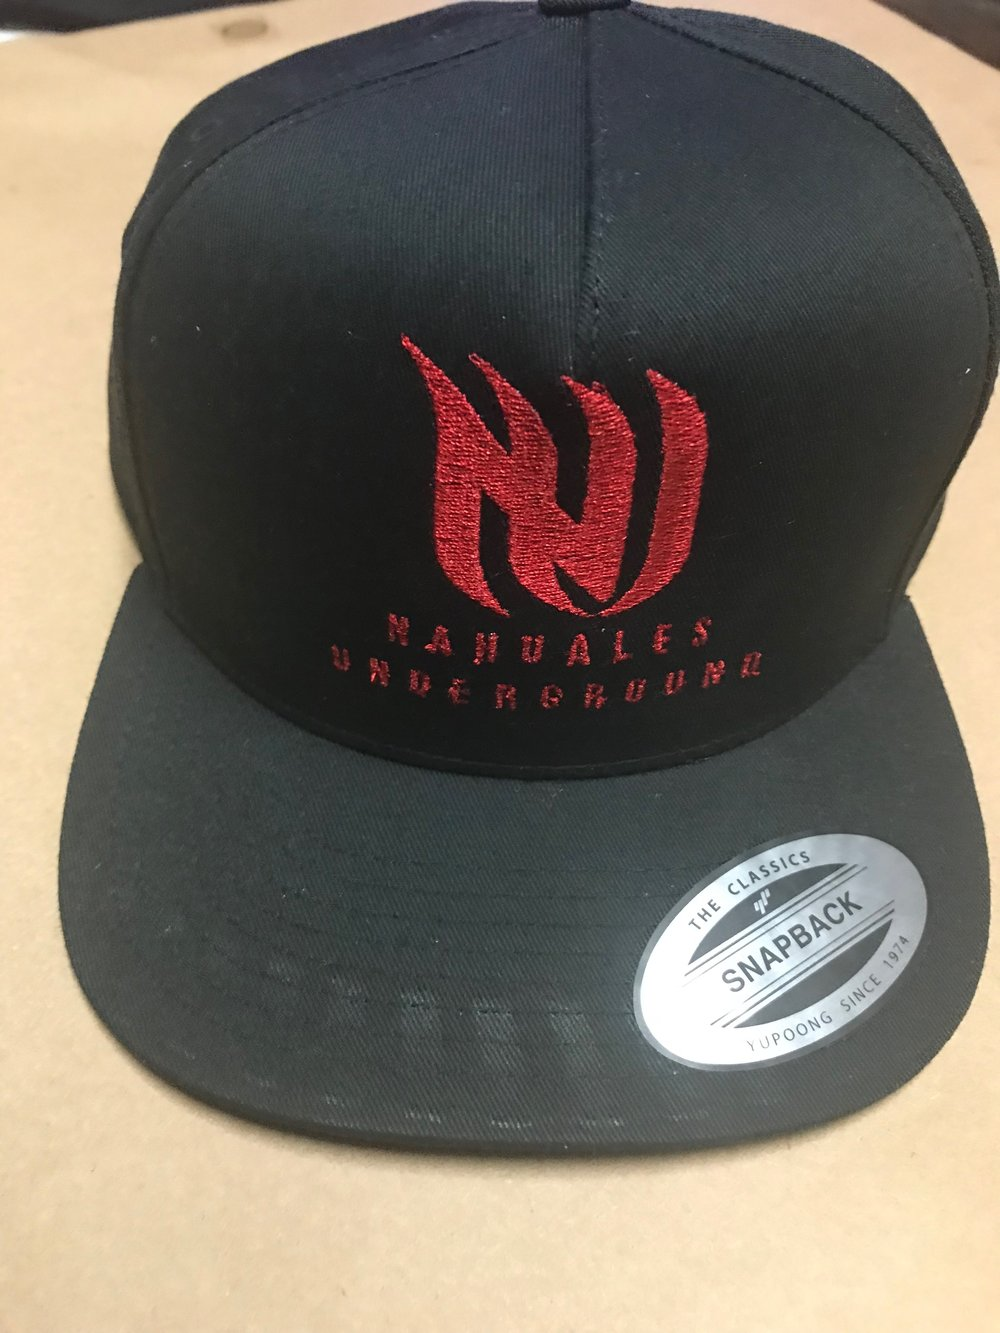 Nahuales Underground Hat - If you are interested to buy one just send us a message here in our website or facebook.The hat cost $25 dollars.